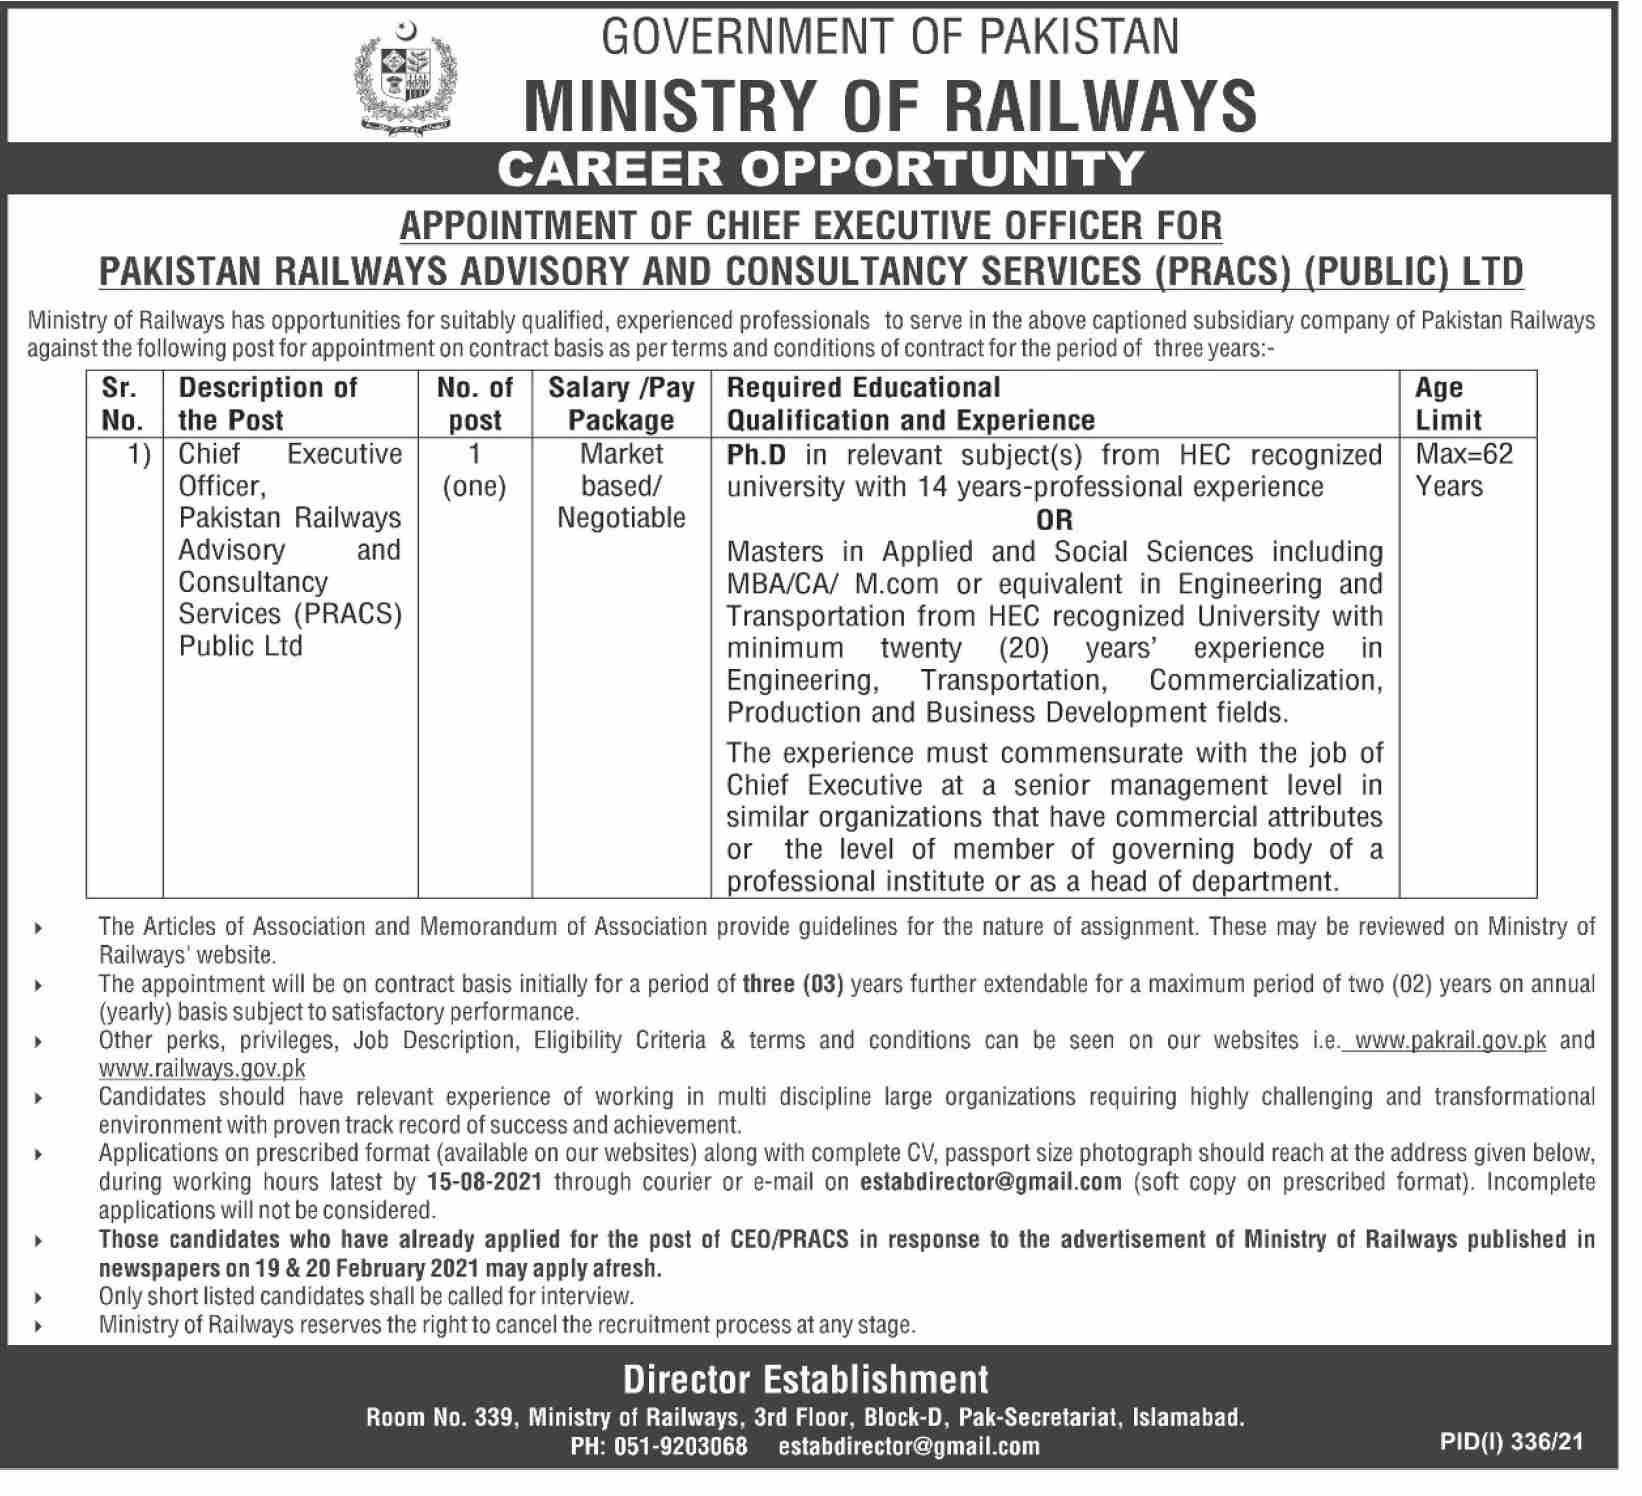 Ministry of Railways Career 2021 for Chief Executive Officer